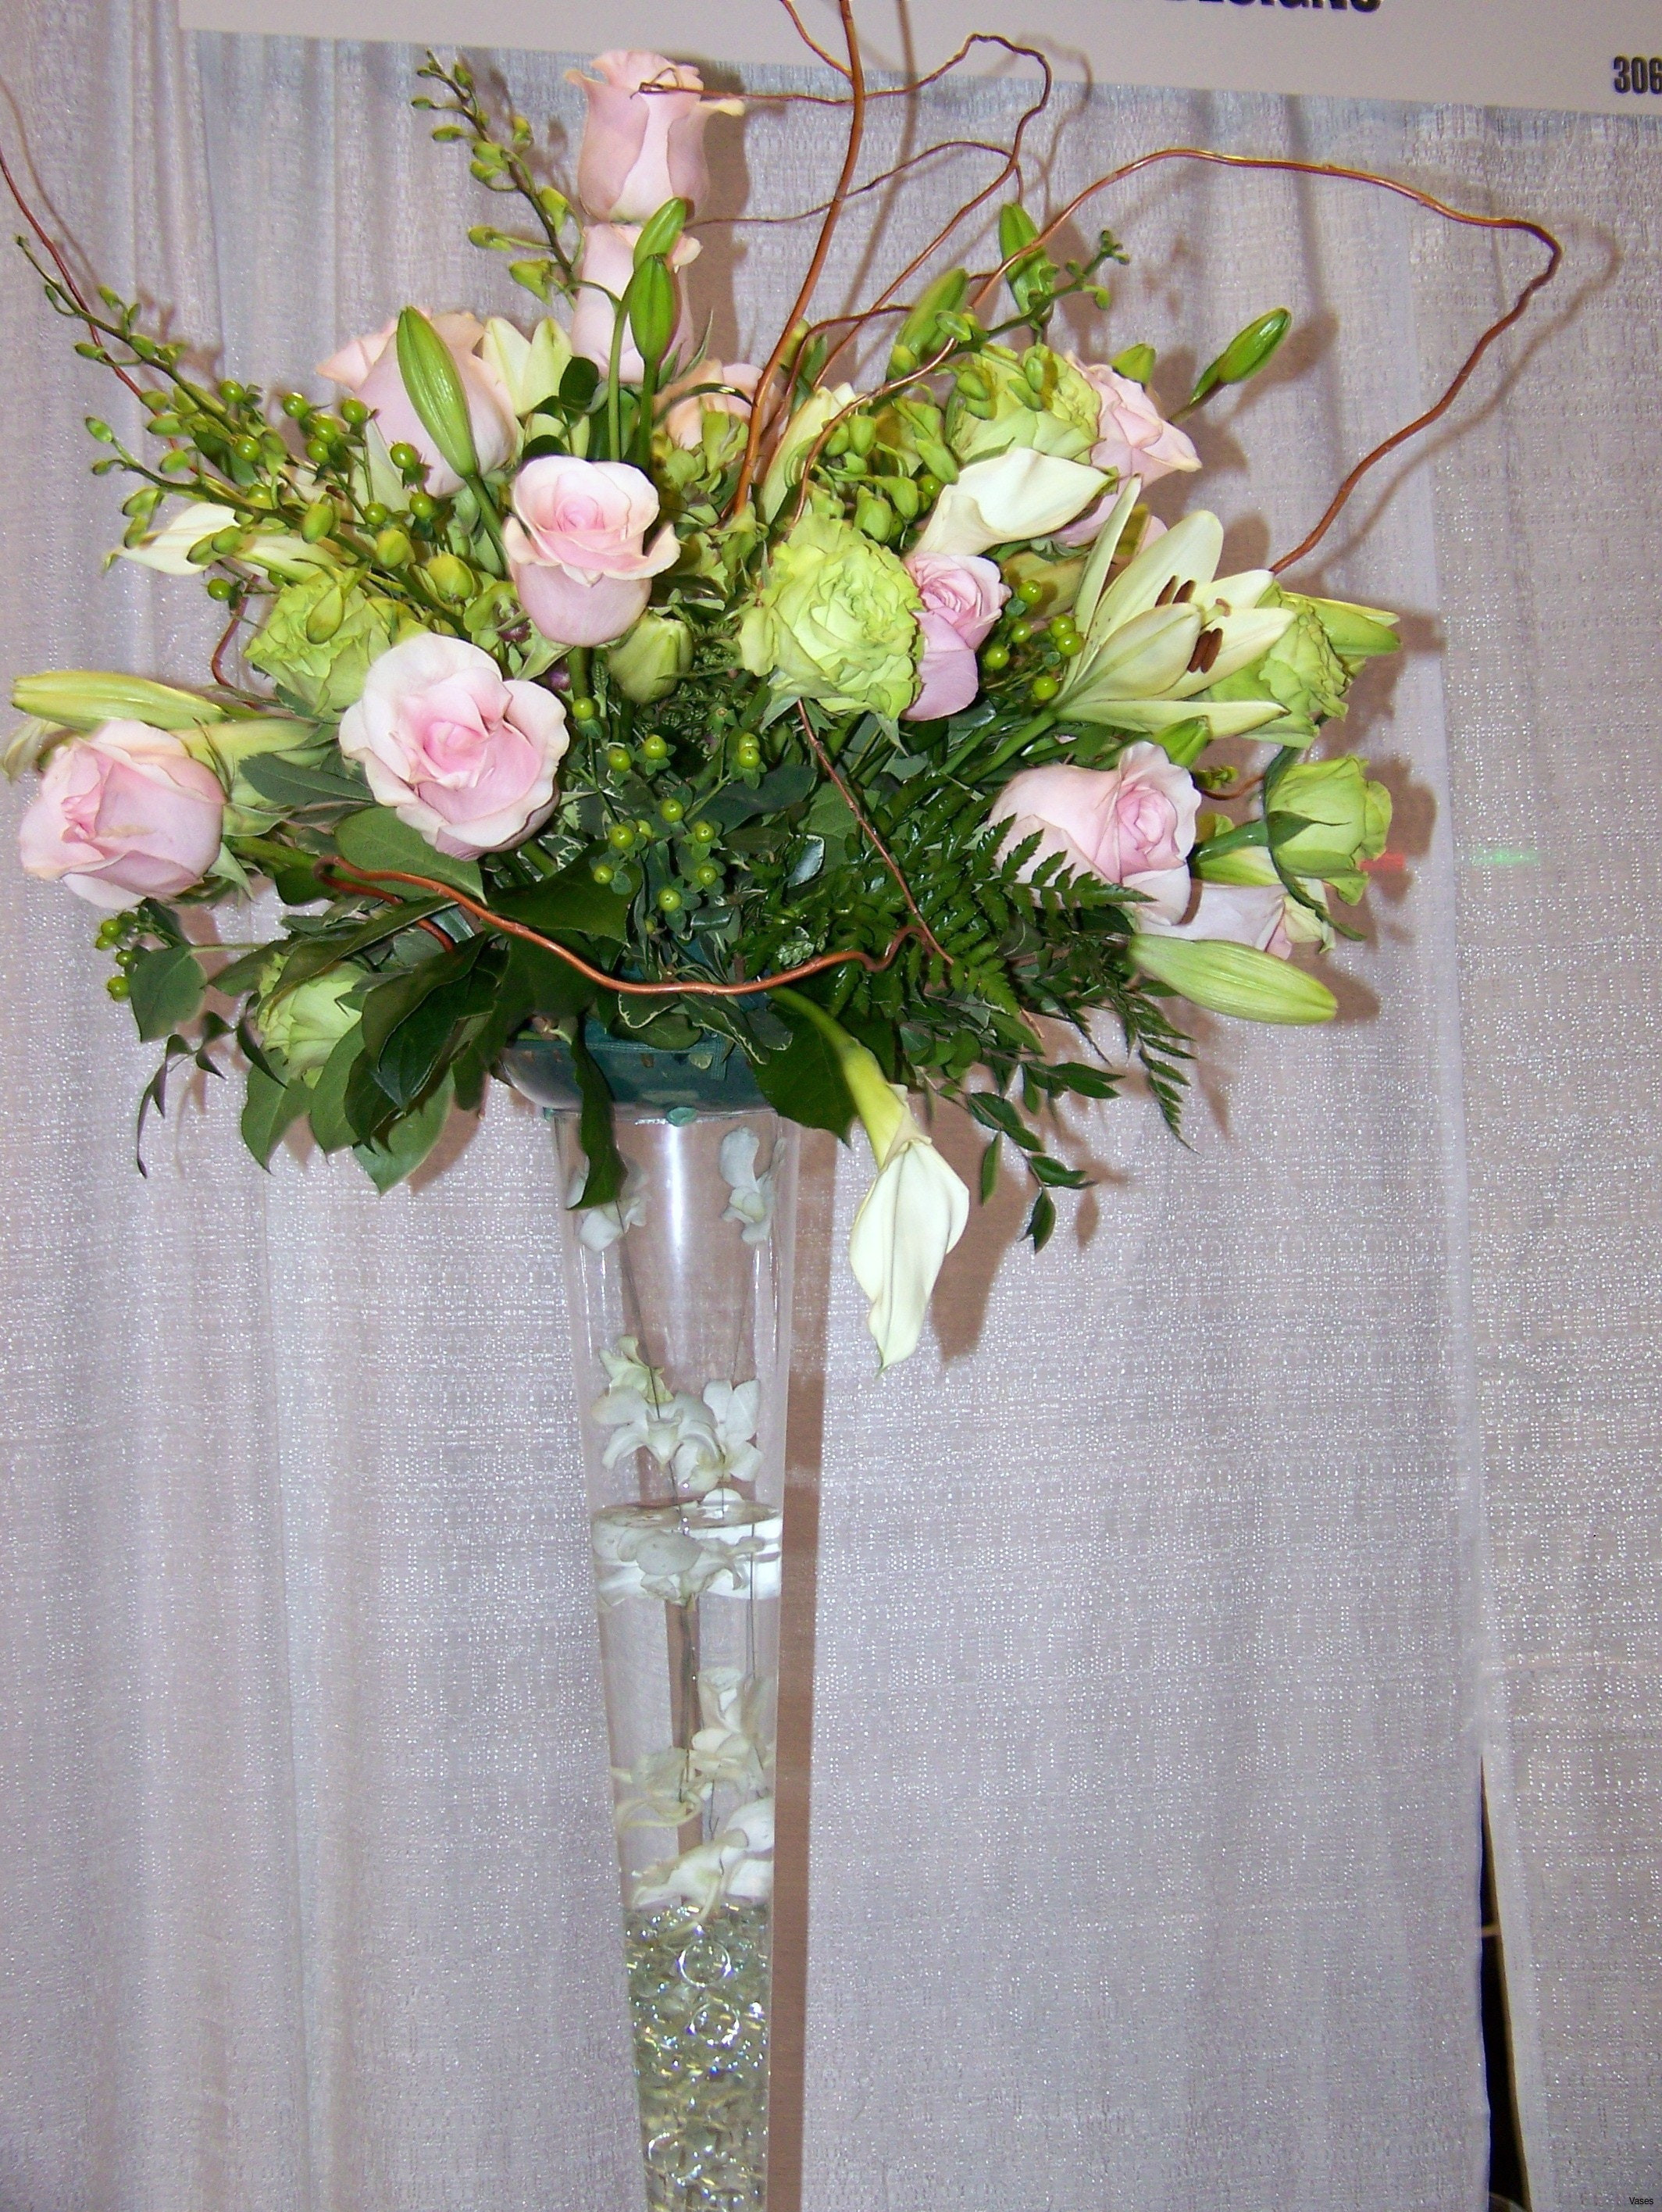 white tulips in glass vase of granite flower vases stock vases funeral carnival glass vasesi 0d with granite flower vases stock vases funeral carnival glass vasesi 0d granite flower antique scheme